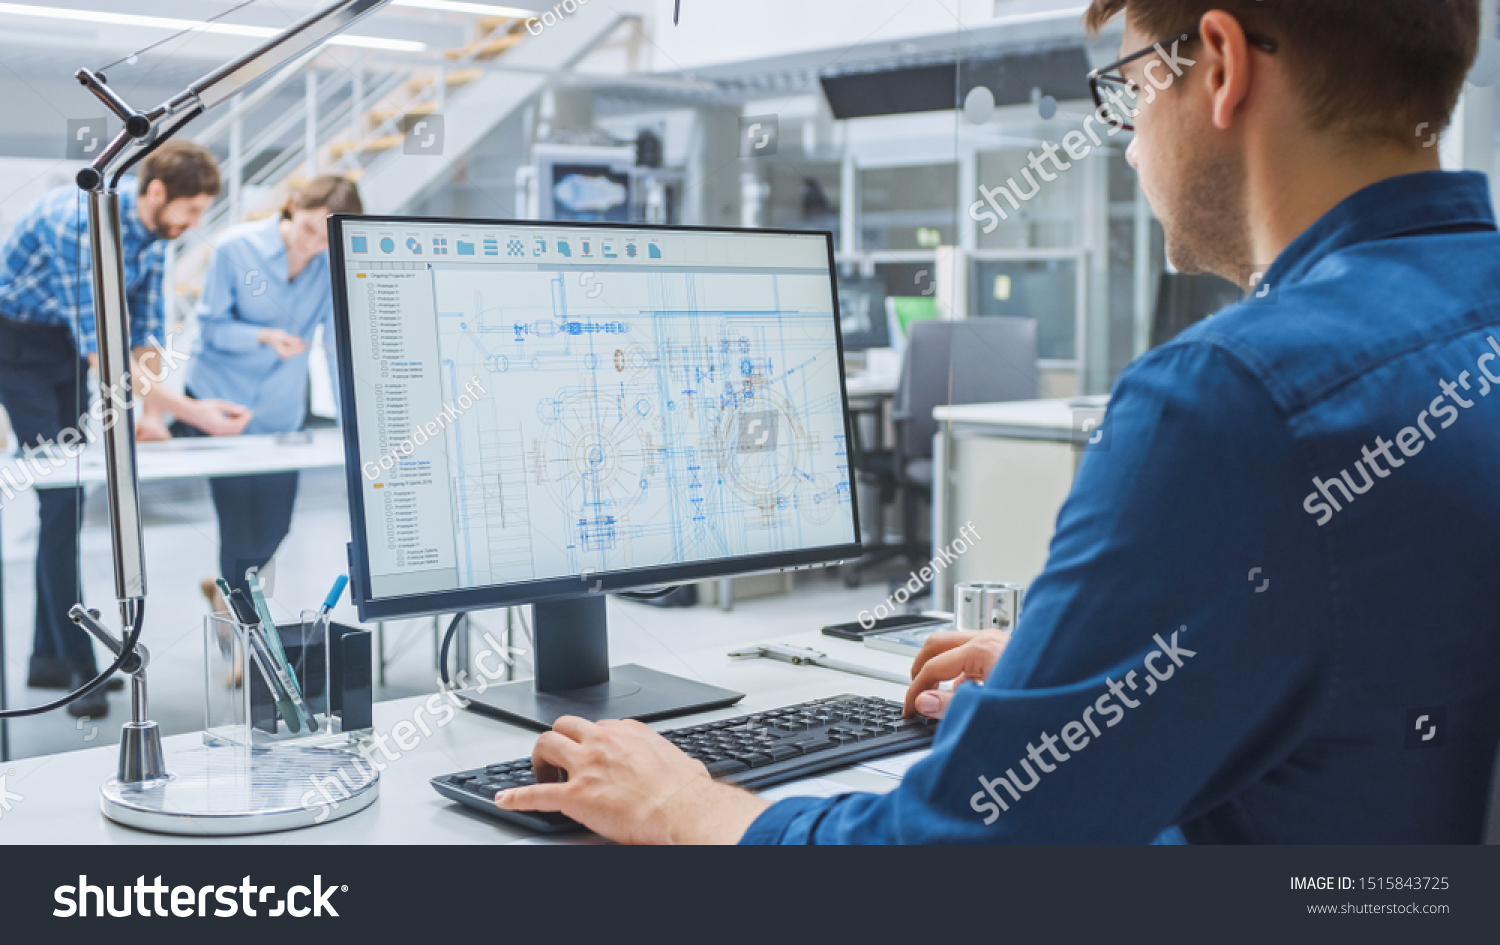 Over the Shoulder Shot of Engineer Working with CAD Software on Desktop Computer, Screen Shows Technical Drafts and Drawings. In the Background Engineering Facility Specialising on Industrial Design #1515843725